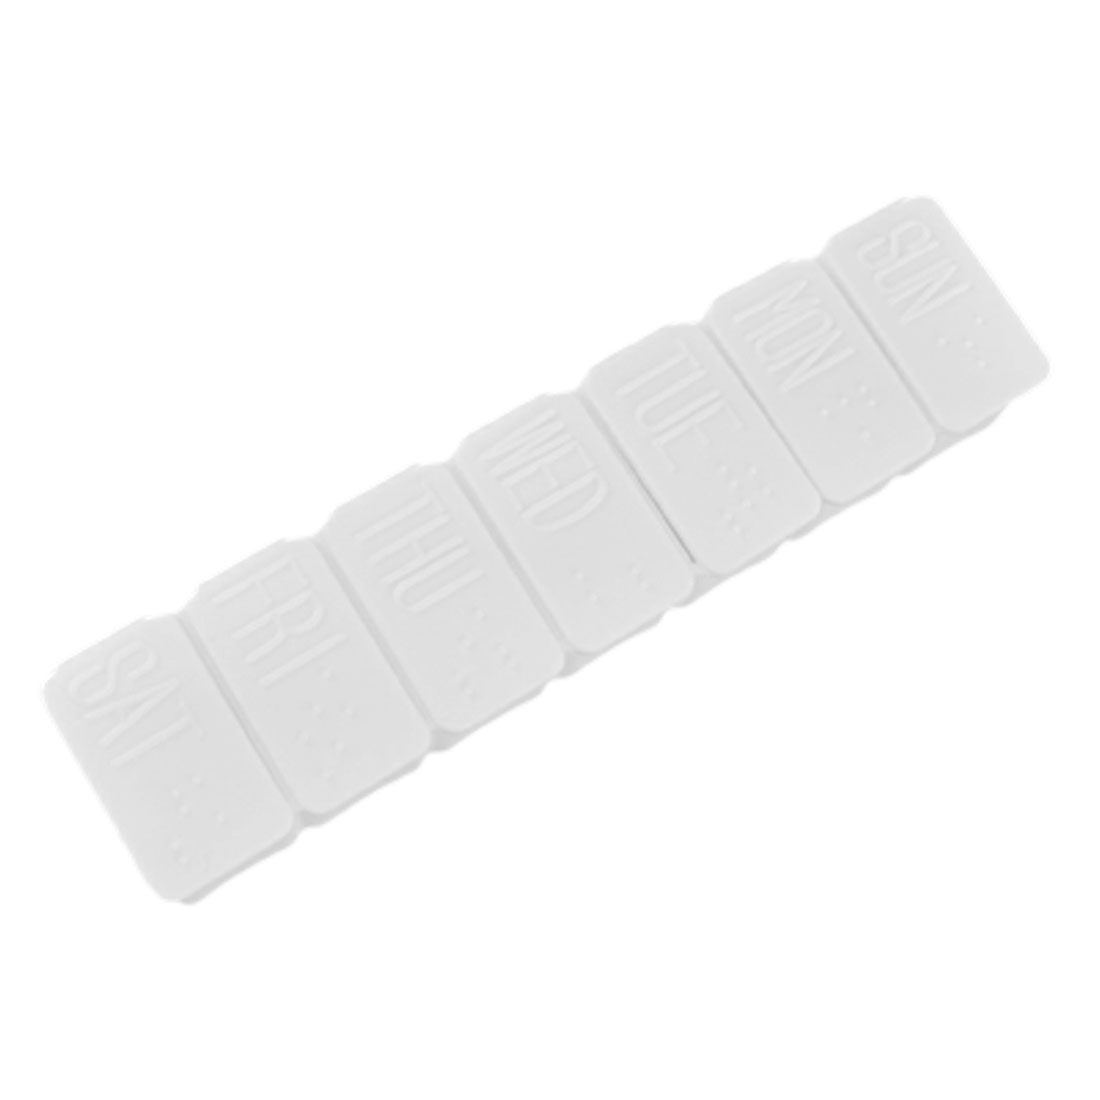 White Rectangle Hard Plastic 7 Day Medicine Organizer Case